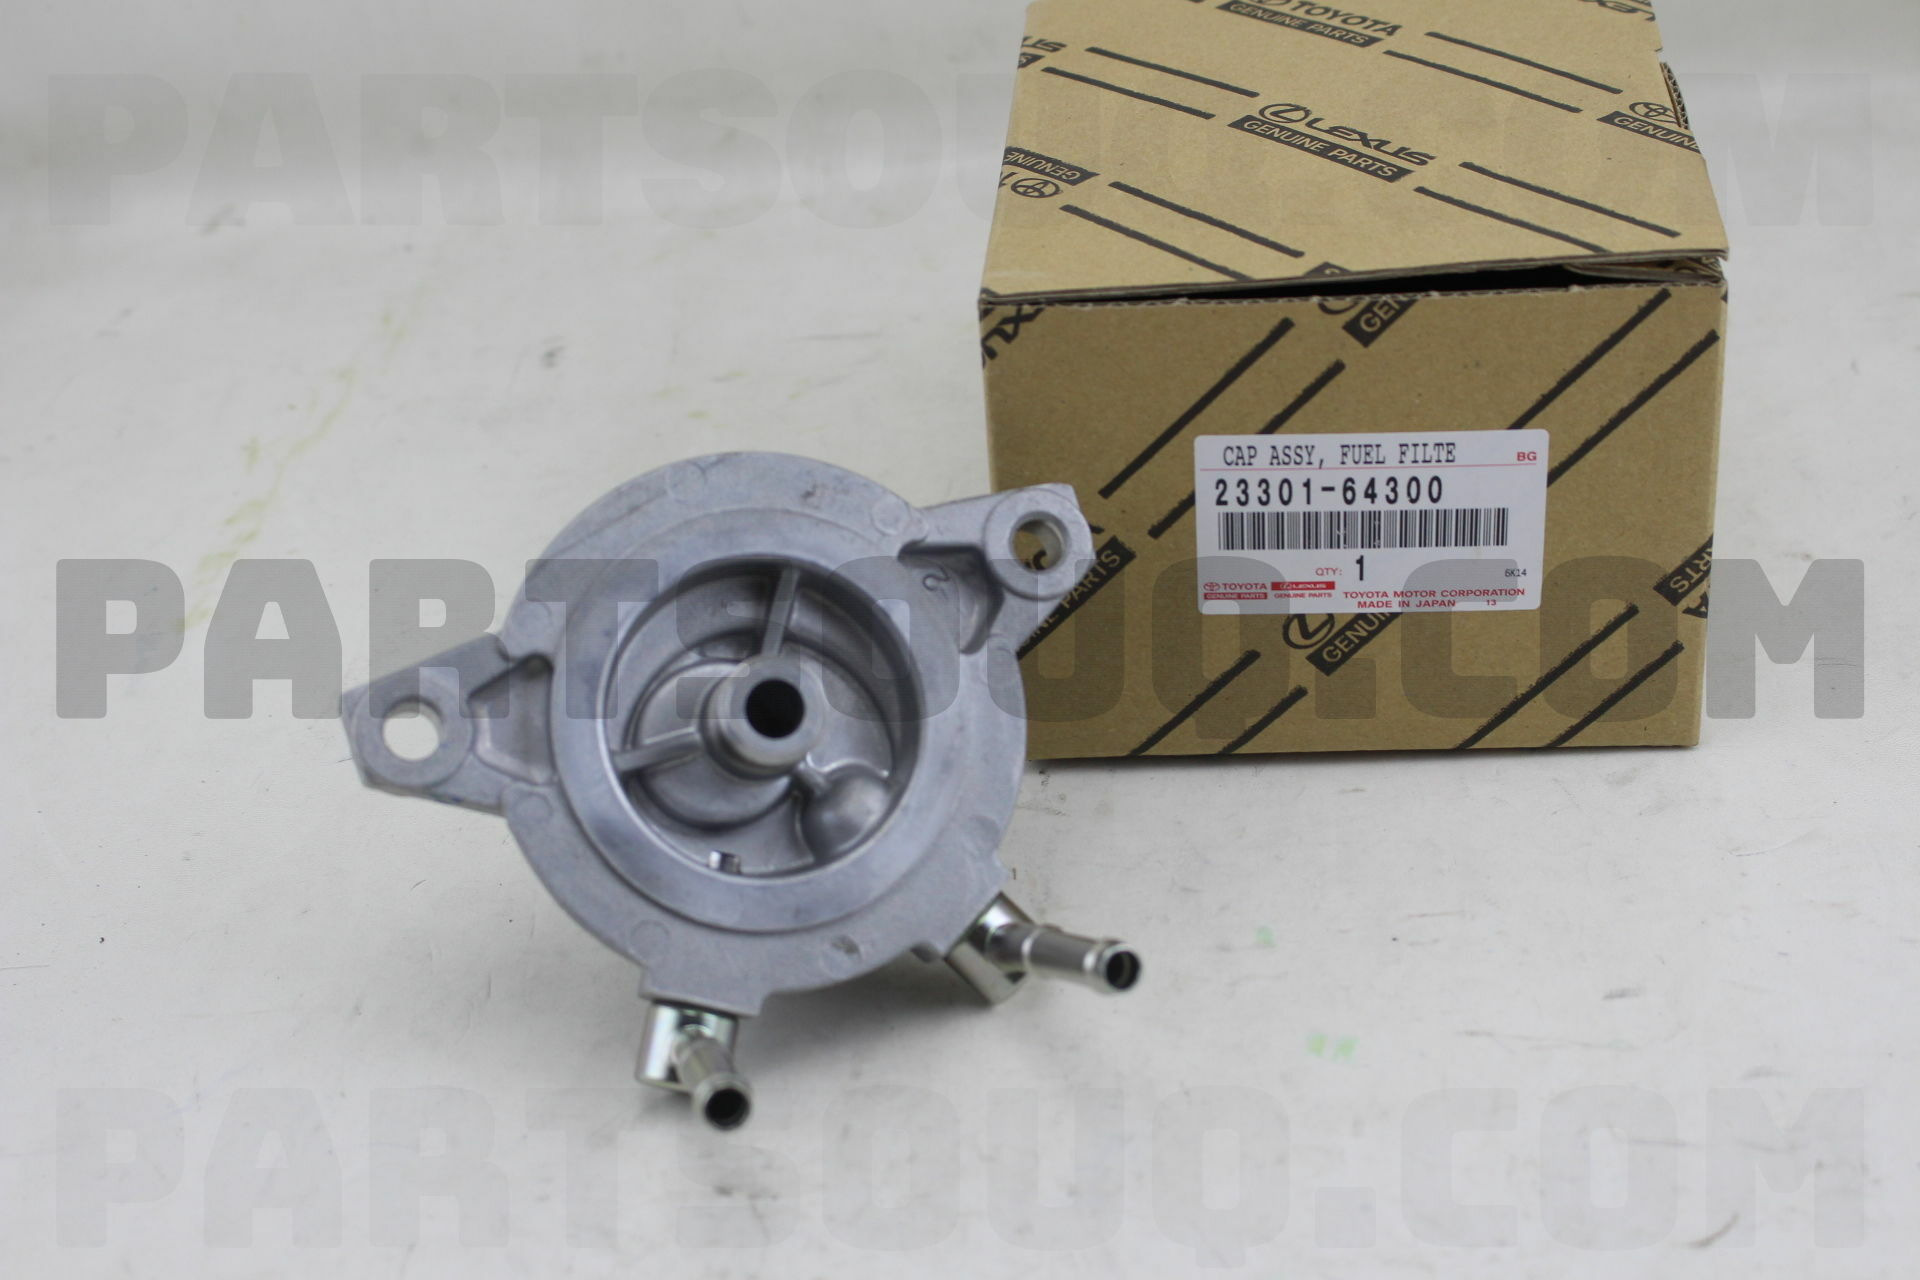 hight resolution of toyota 2330164300 cap assy fuel filter